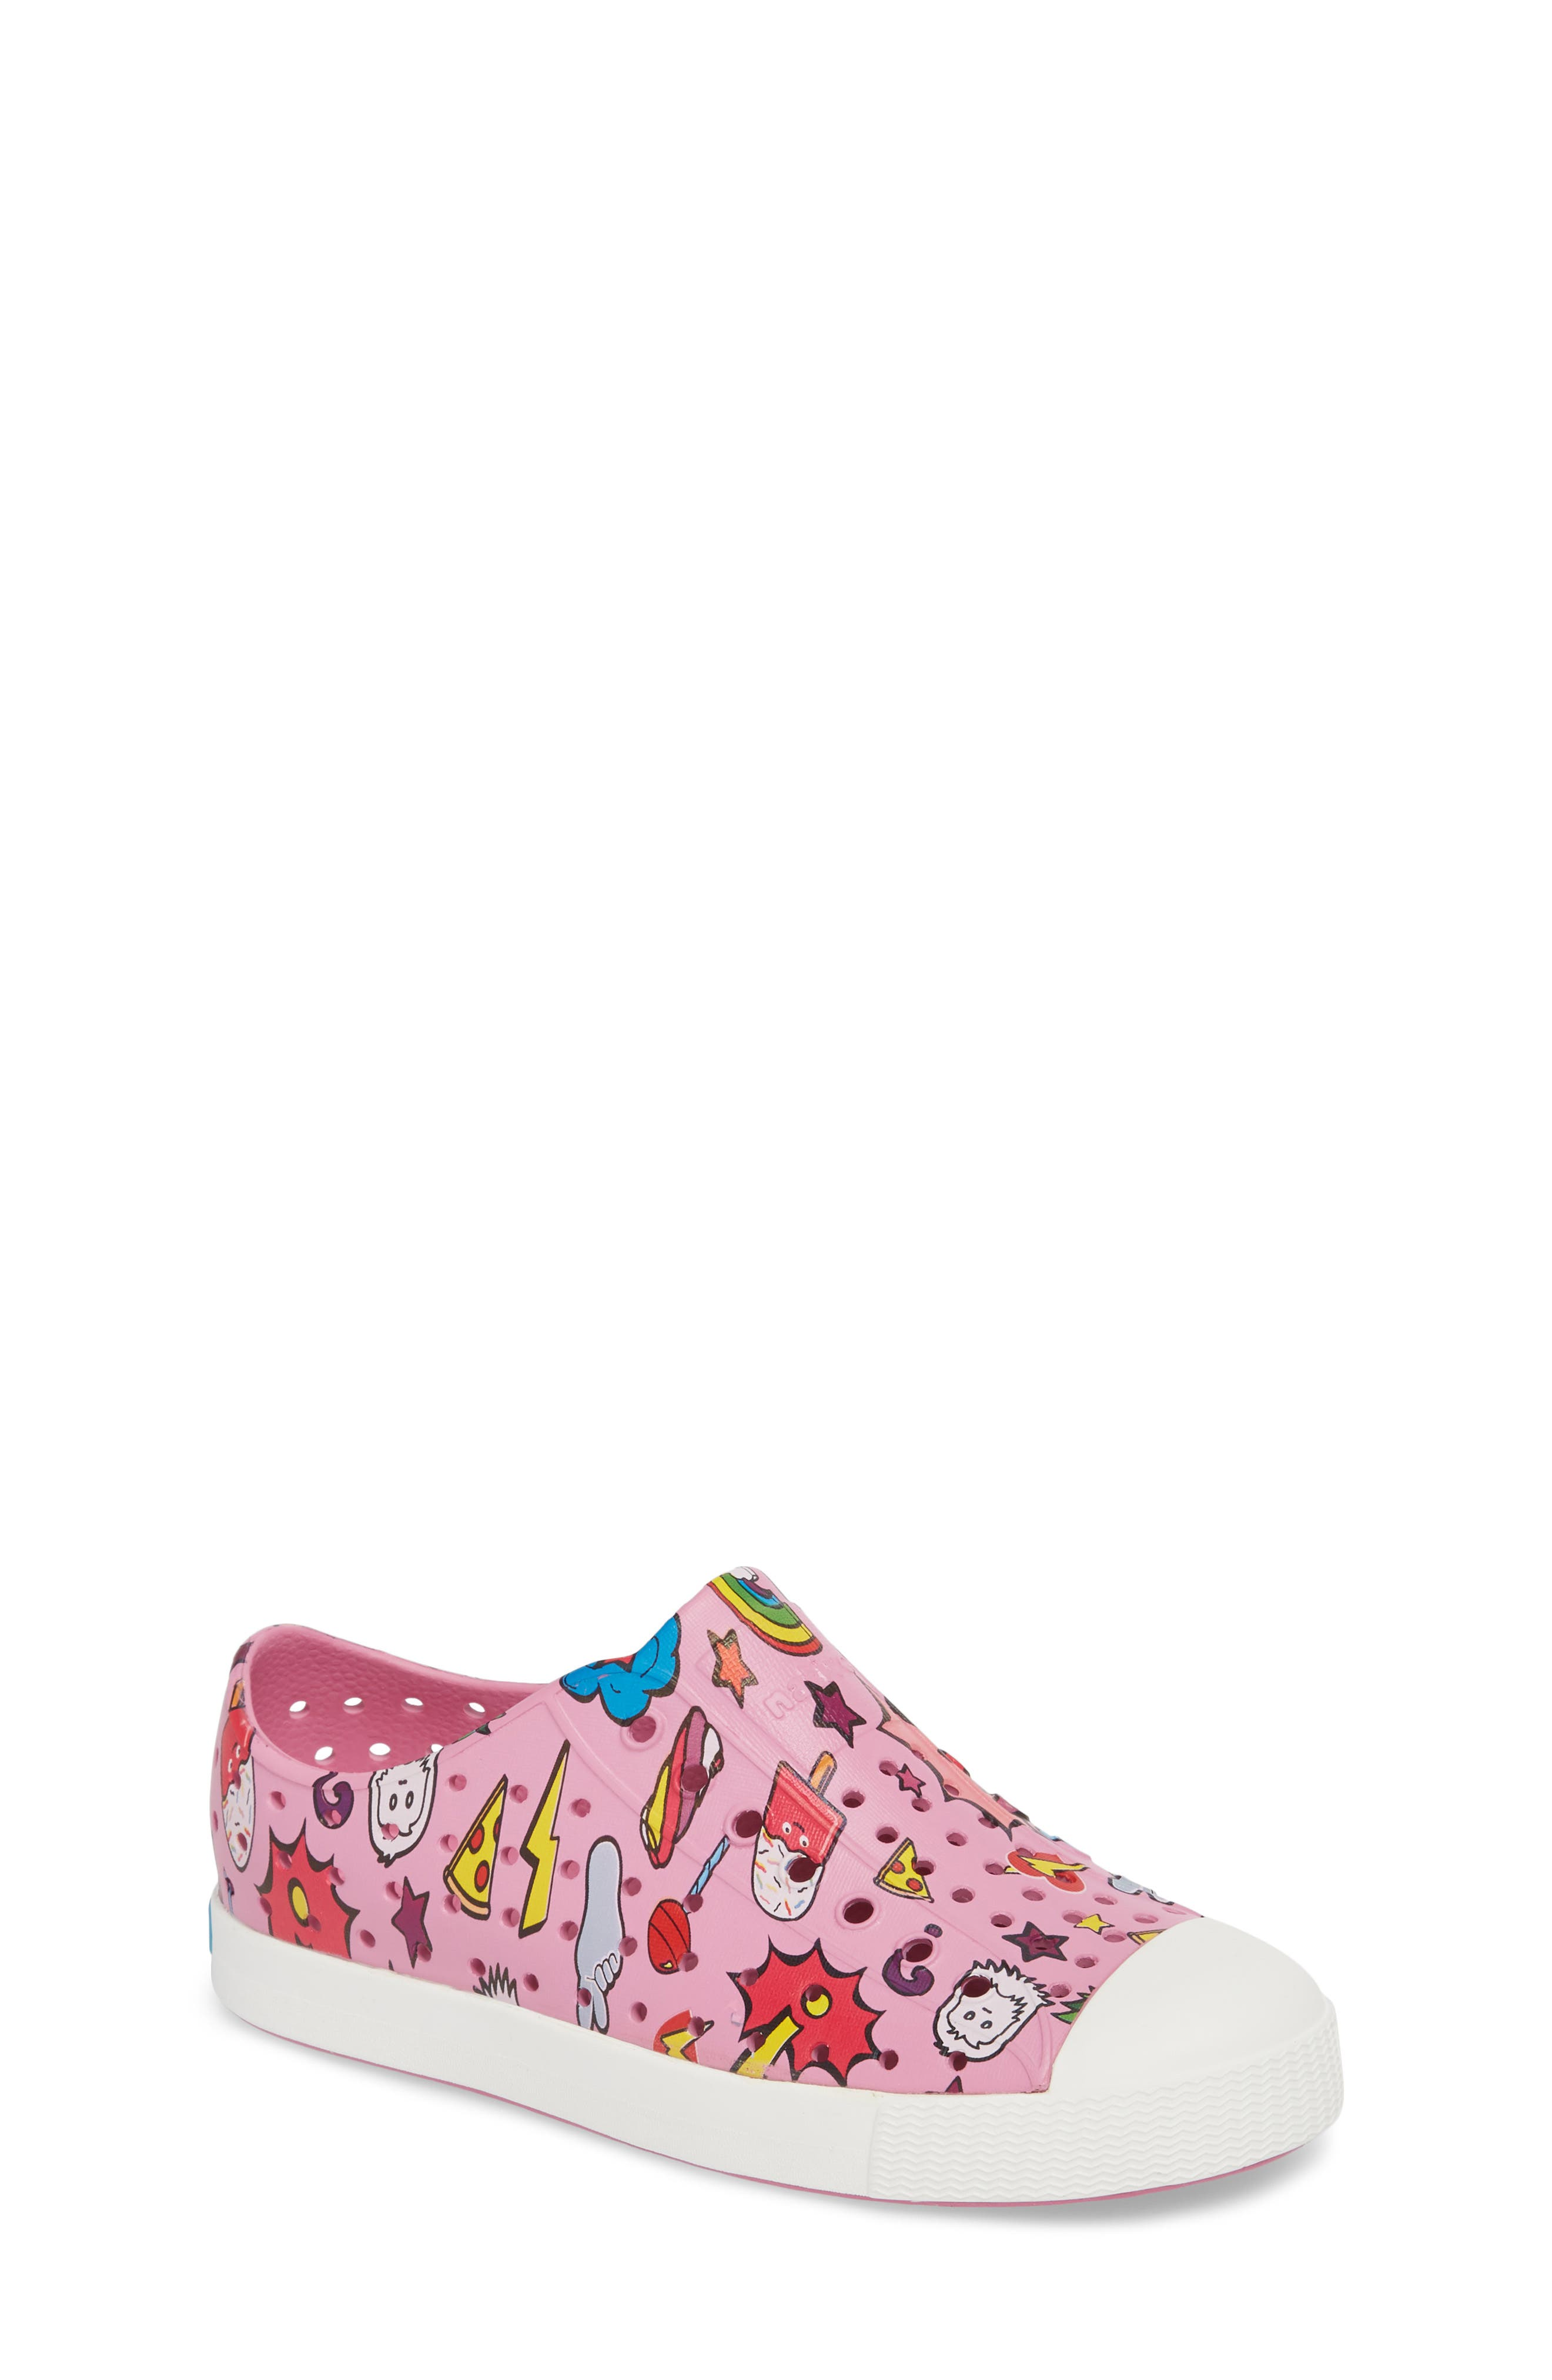 Jefferson Water Friendly Perforated Slip-On,                         Main,                         color, MALIBU PINK/ WHITE/ STICKER